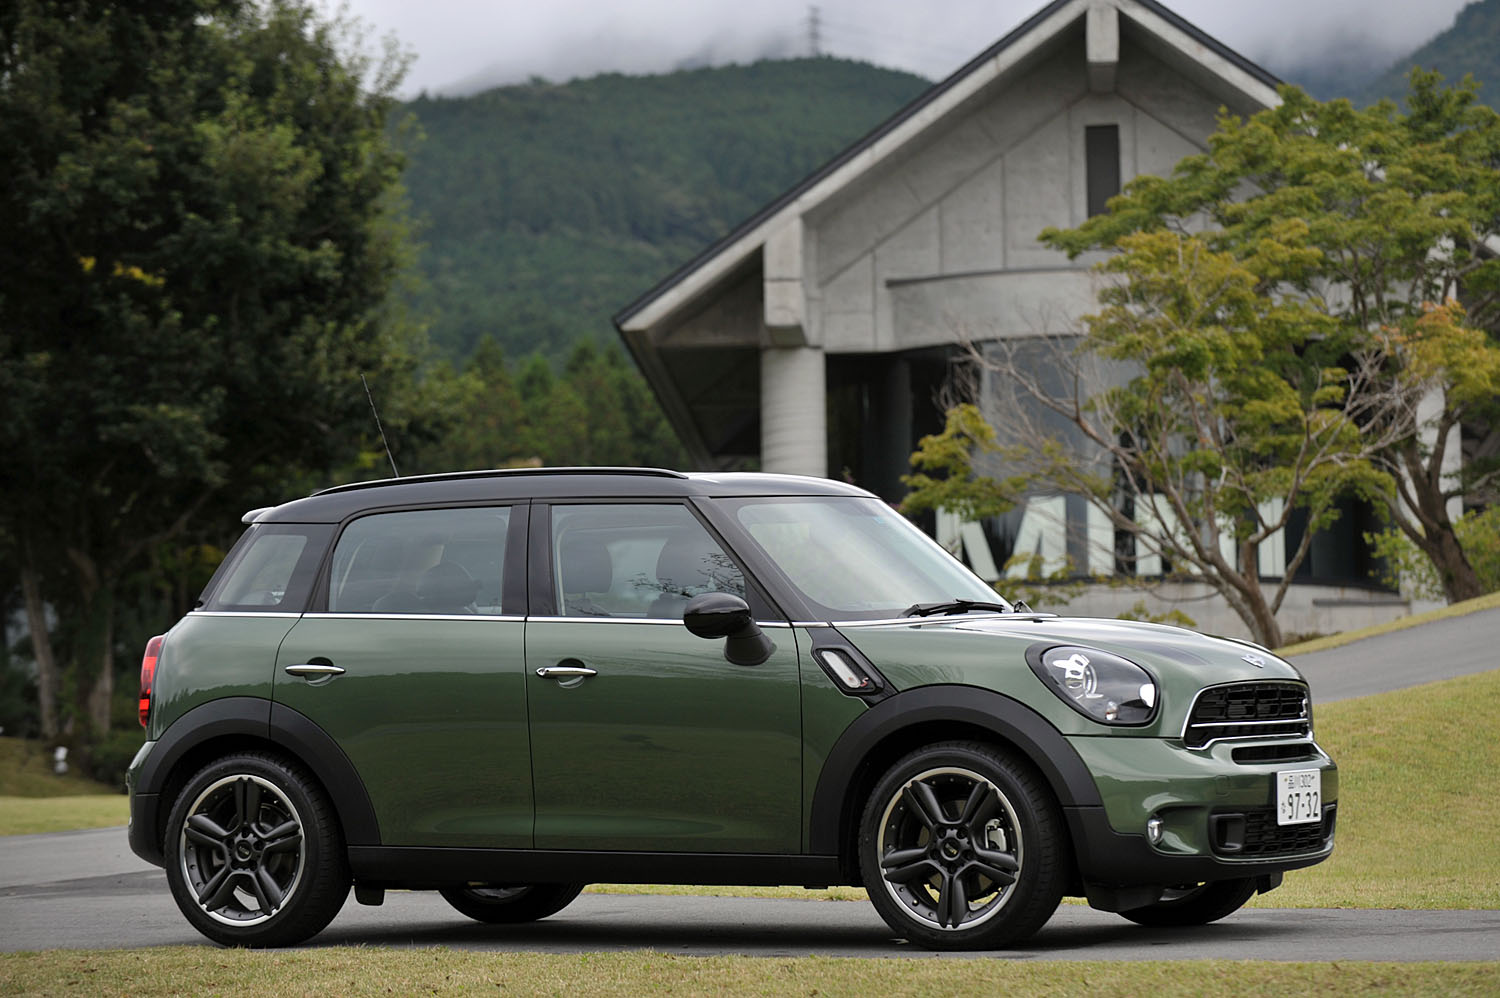 THE MINI cooperS/MINI cooper SD crossover